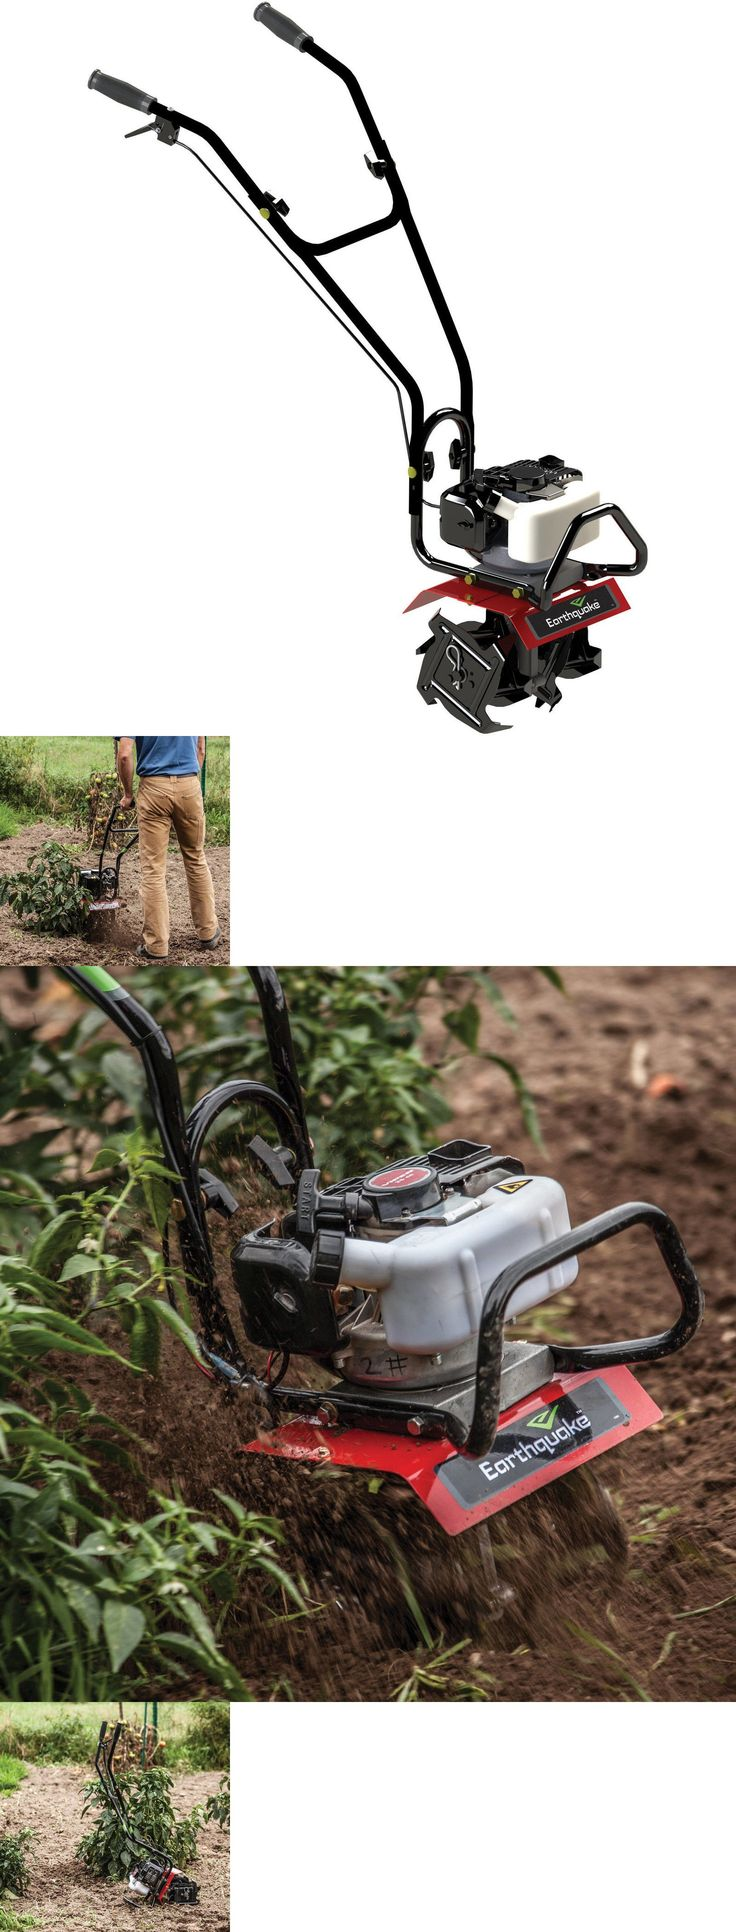 Tillers 29519: Earthquake Gas Garden Tiller Mc25 Mini Cultivator With 25Cc 2-Cycle Viper Engine -> BUY IT NOW ONLY: $218.88 on eBay!